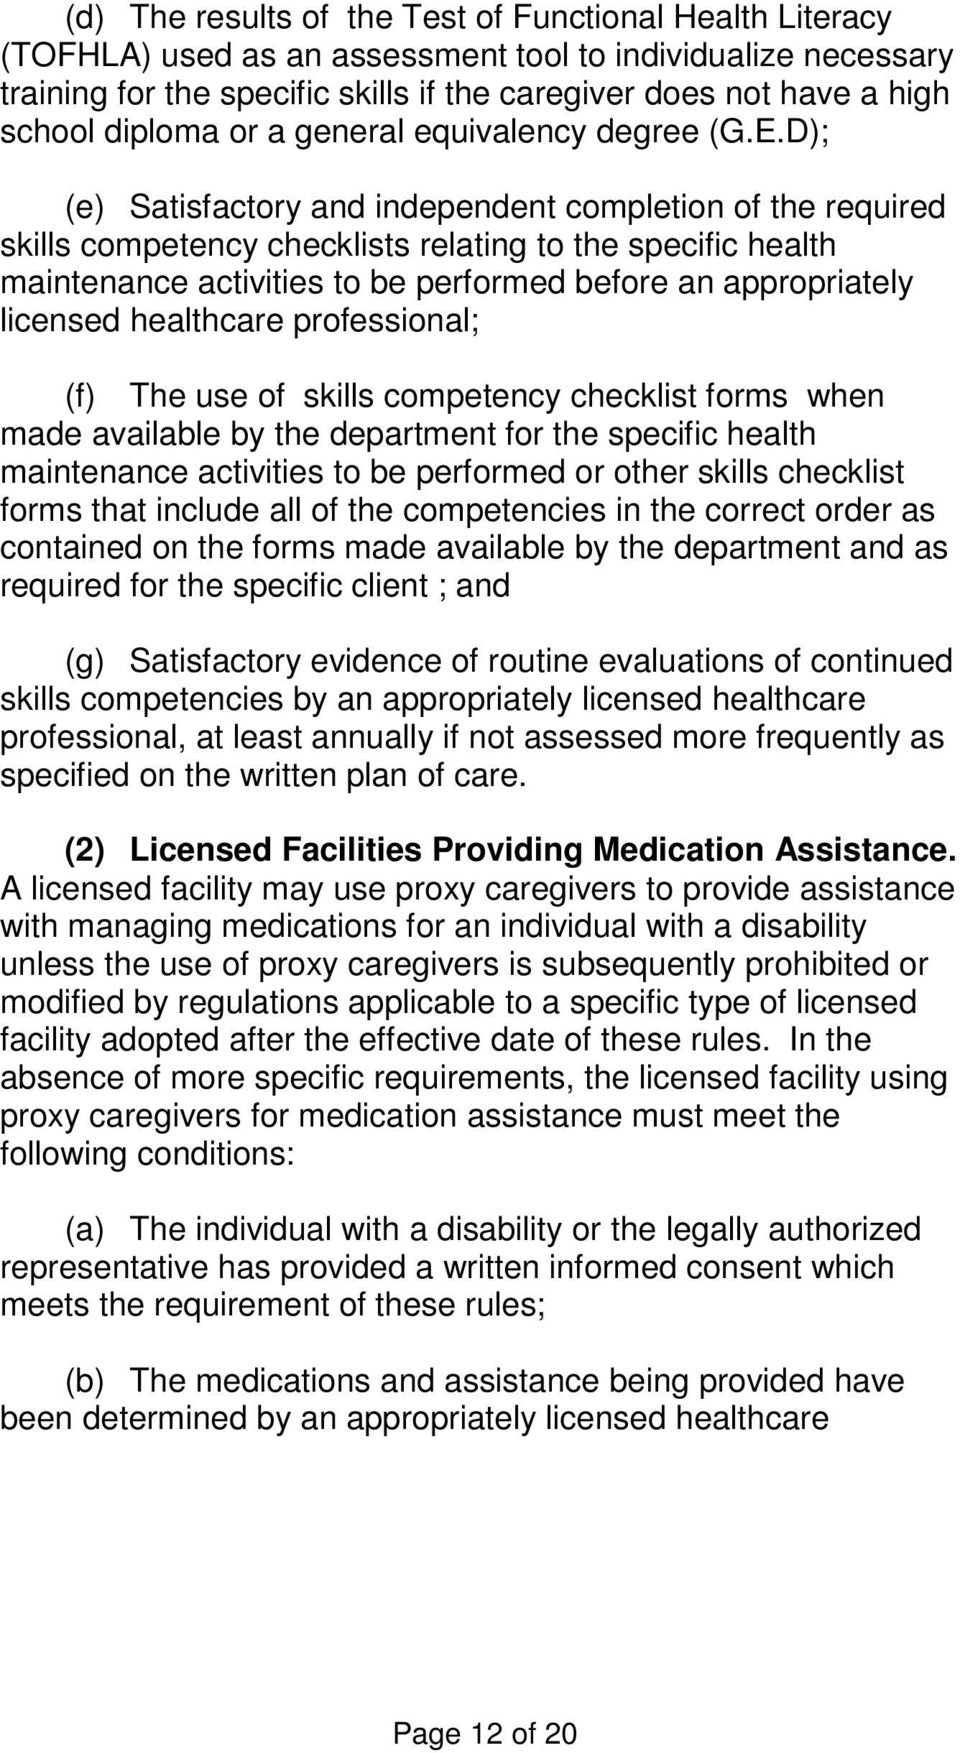 D); (e) Satisfactory and independent completion of the required skills competency checklists relating to the specific health maintenance activities to be performed before an appropriately licensed